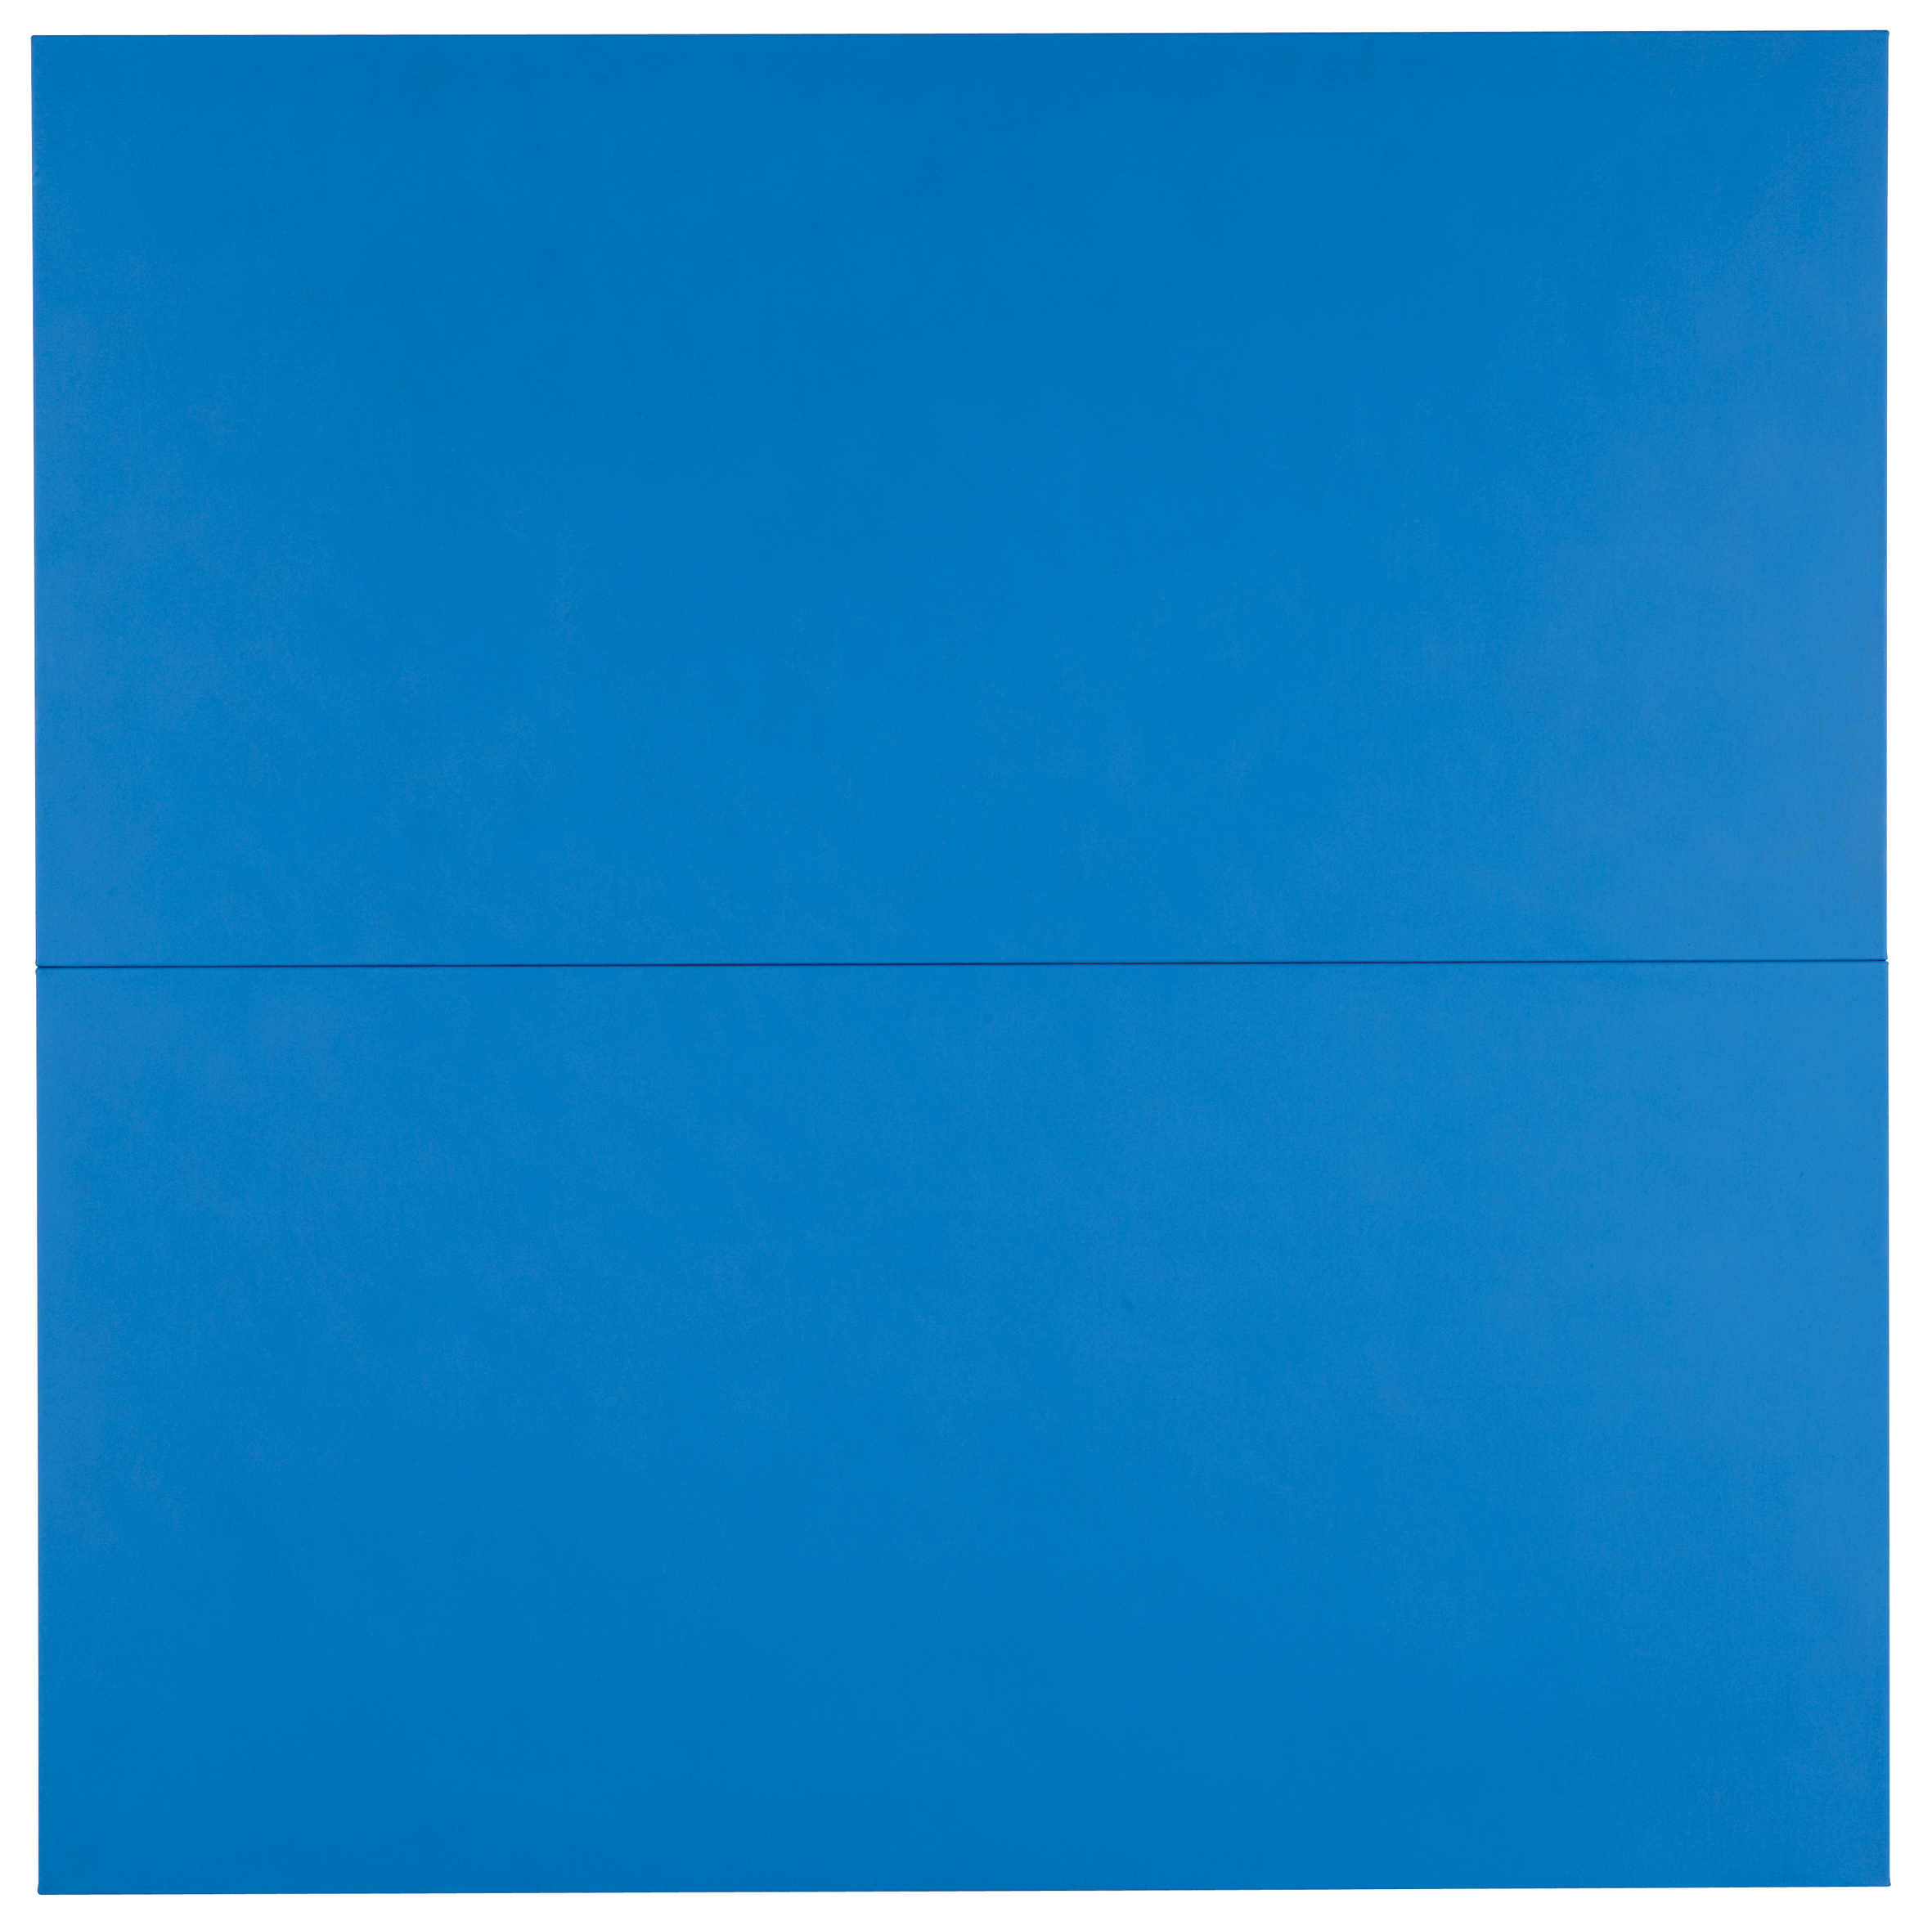 DAVID SERISIER  Untitled Blue Square Painting (interstate-10) , 2010 oil on linen 183 x 183 cm